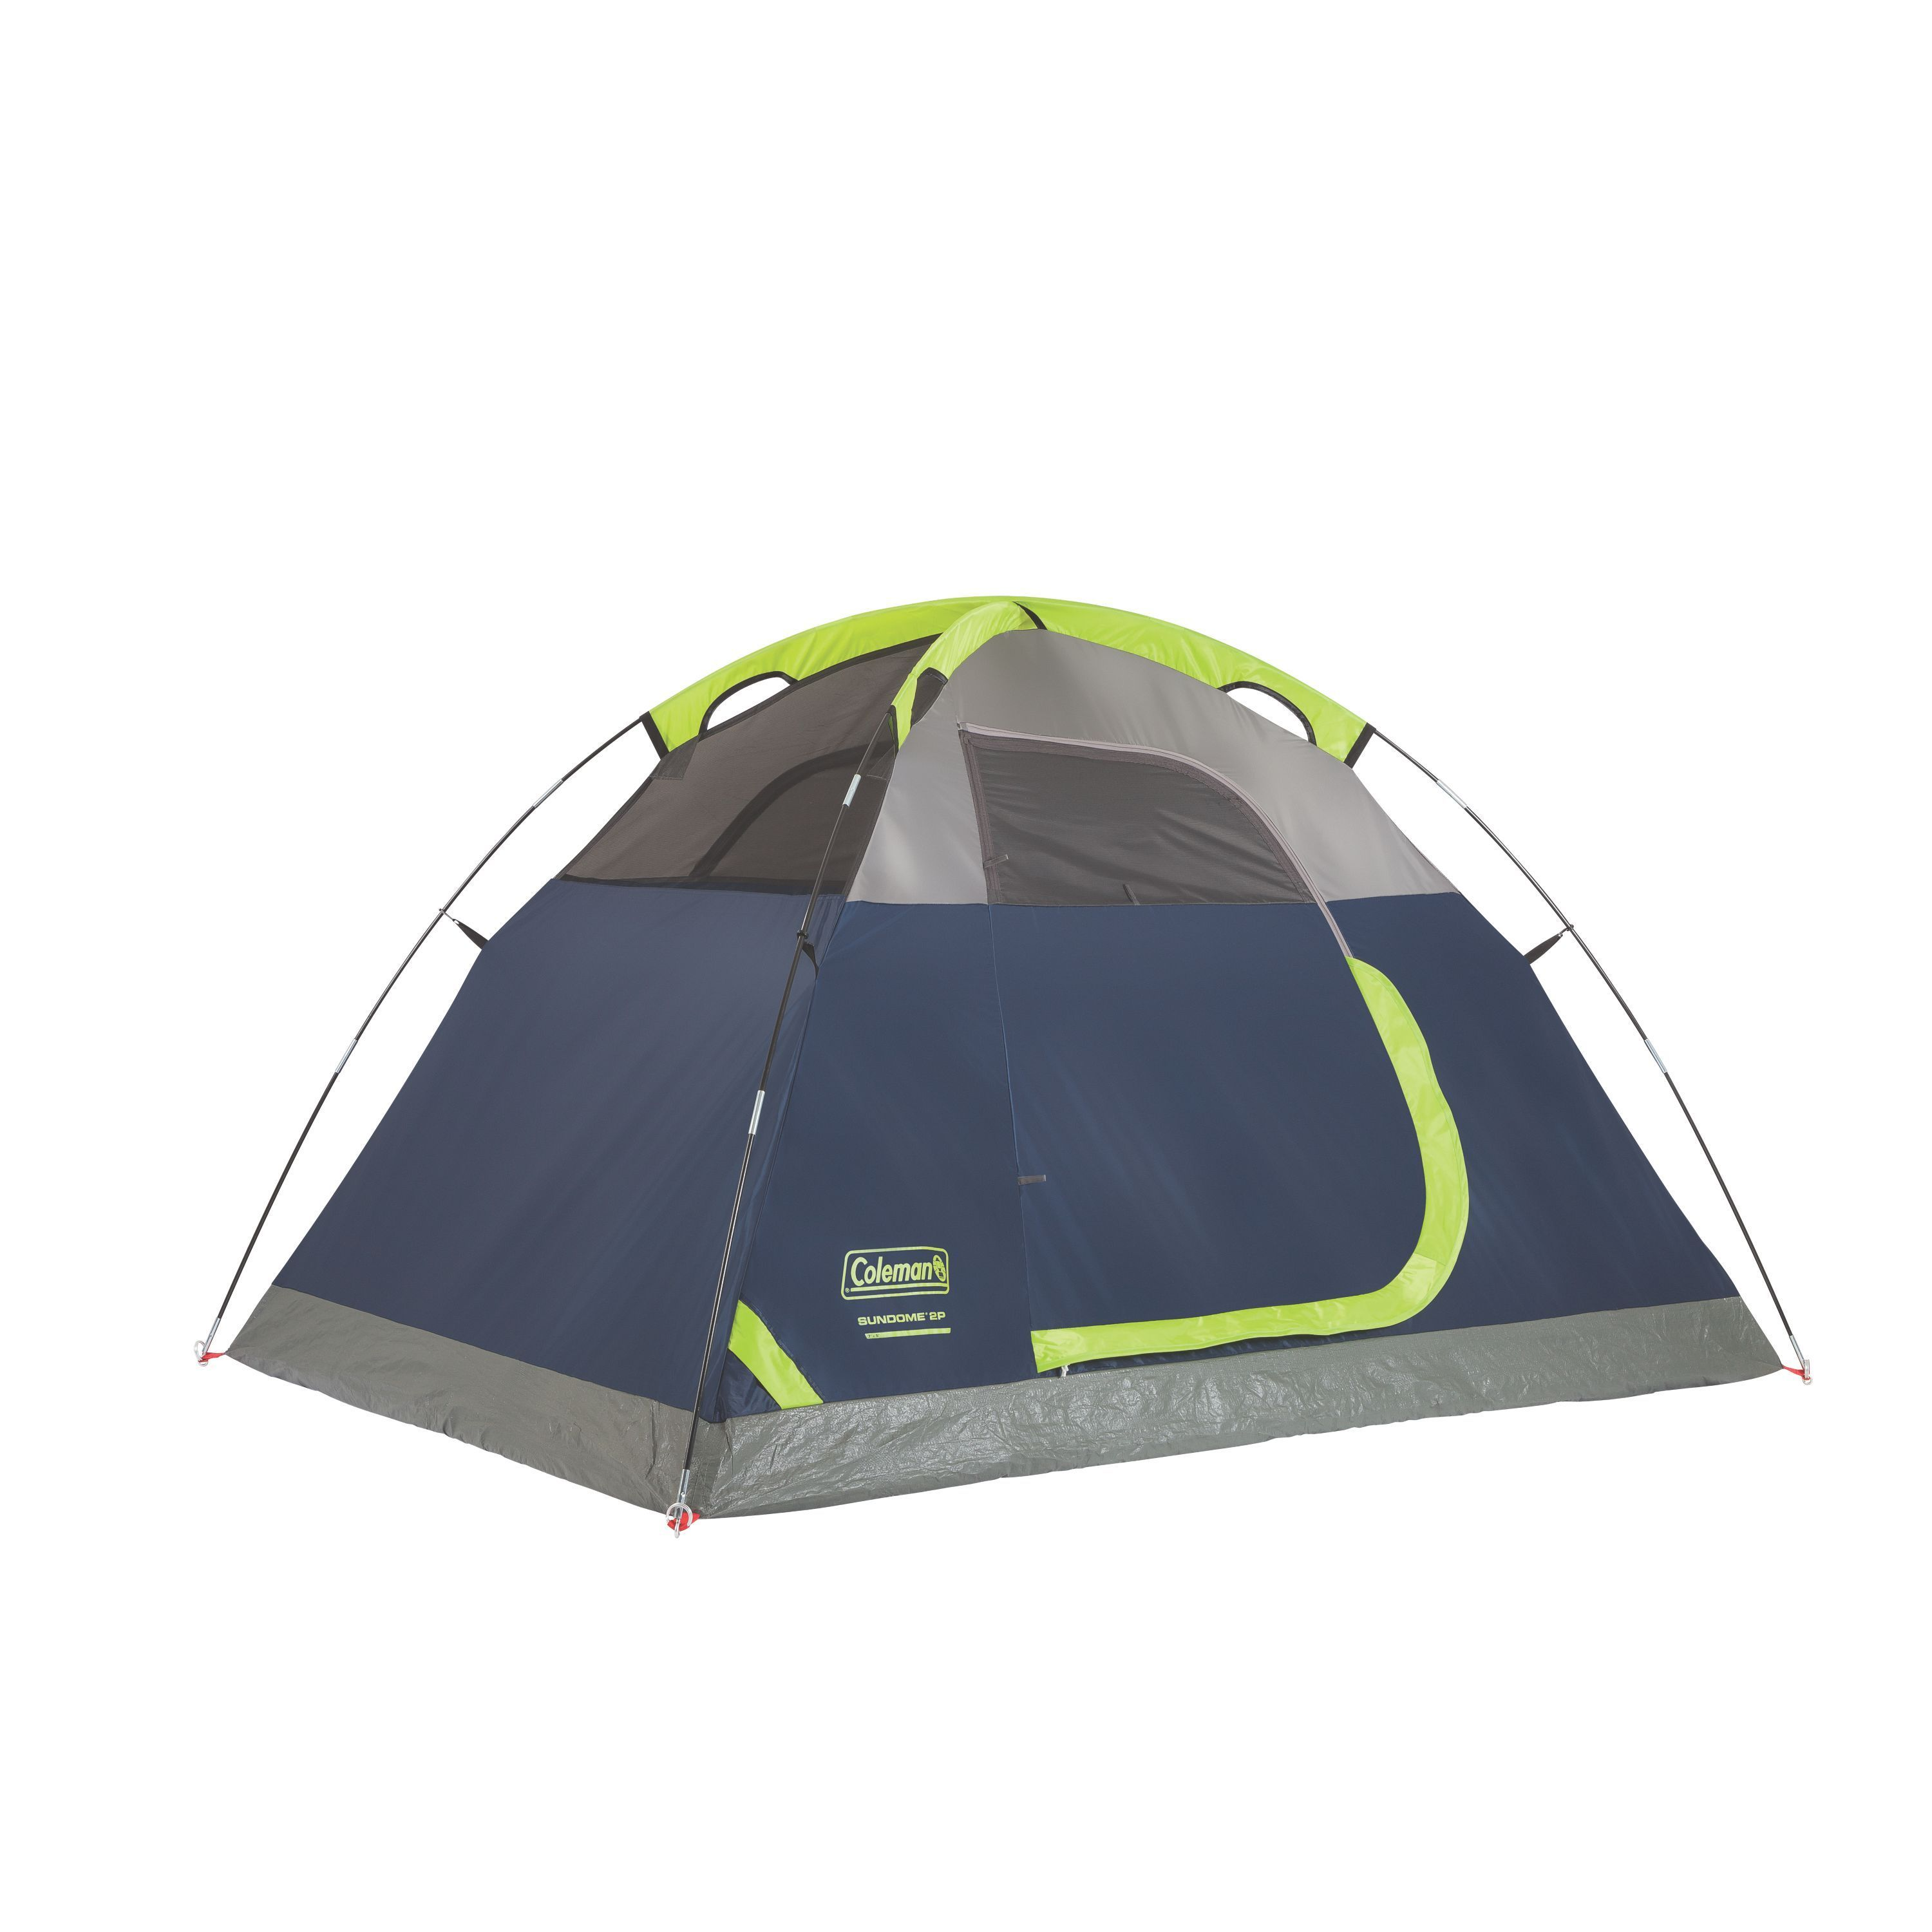 eac6c9c90da Shop Coleman Sundome Blue Nylon and Fabric 2-person Dome Tent - Free  Shipping Today - Overstock - 13778026